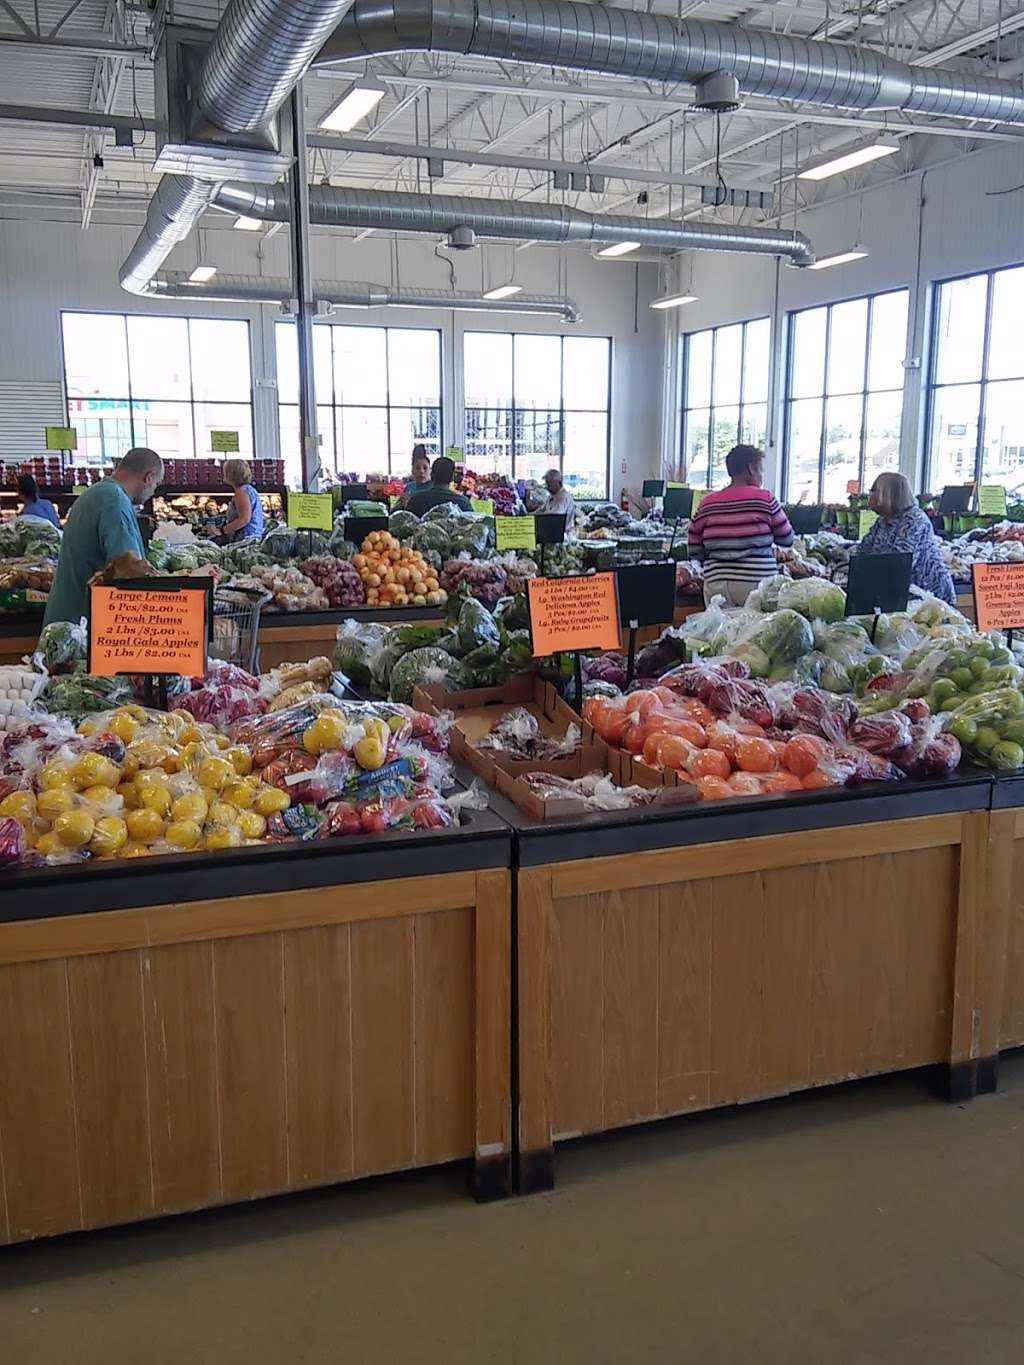 Produce Junction - store  | Photo 6 of 10 | Address: 1350 N Dupont Hwy, Dover, DE 19901, USA | Phone: (302) 674-3080